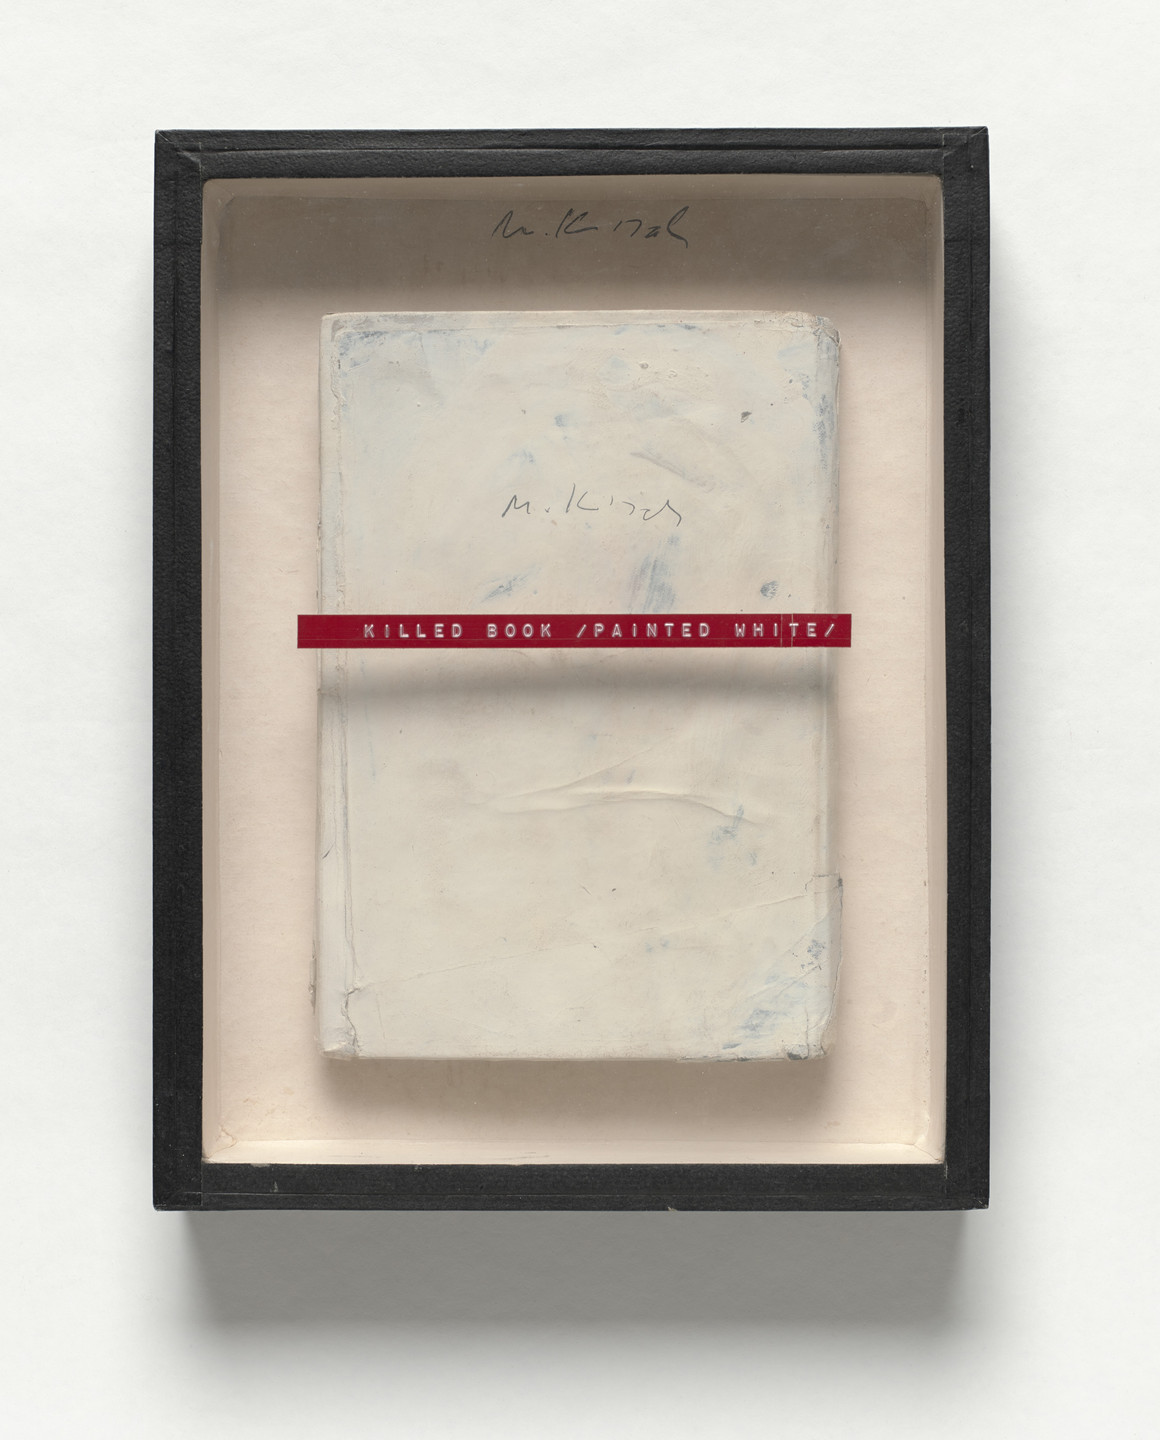 Milan Knížák. Killed Book / Painted White /. 1972